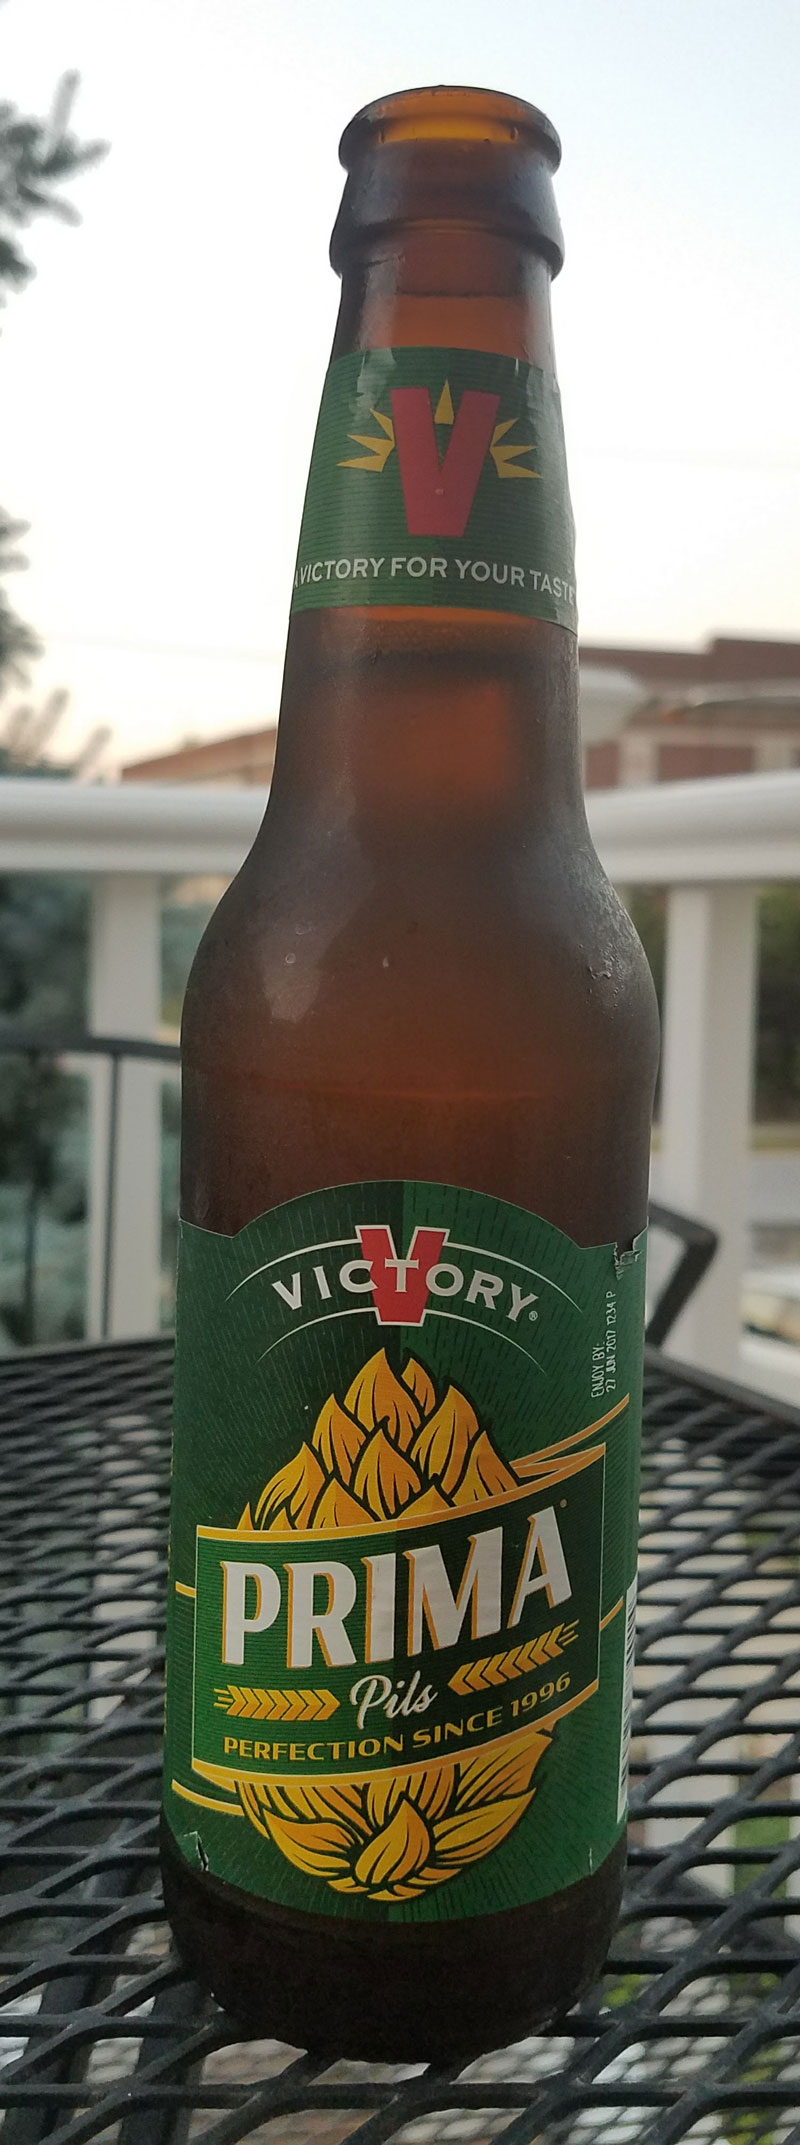 With a name that comes from a German exclamation of joy, Prima Pils is Victory Brewing Company's take on the German Pilsner style. Click through for the full review.